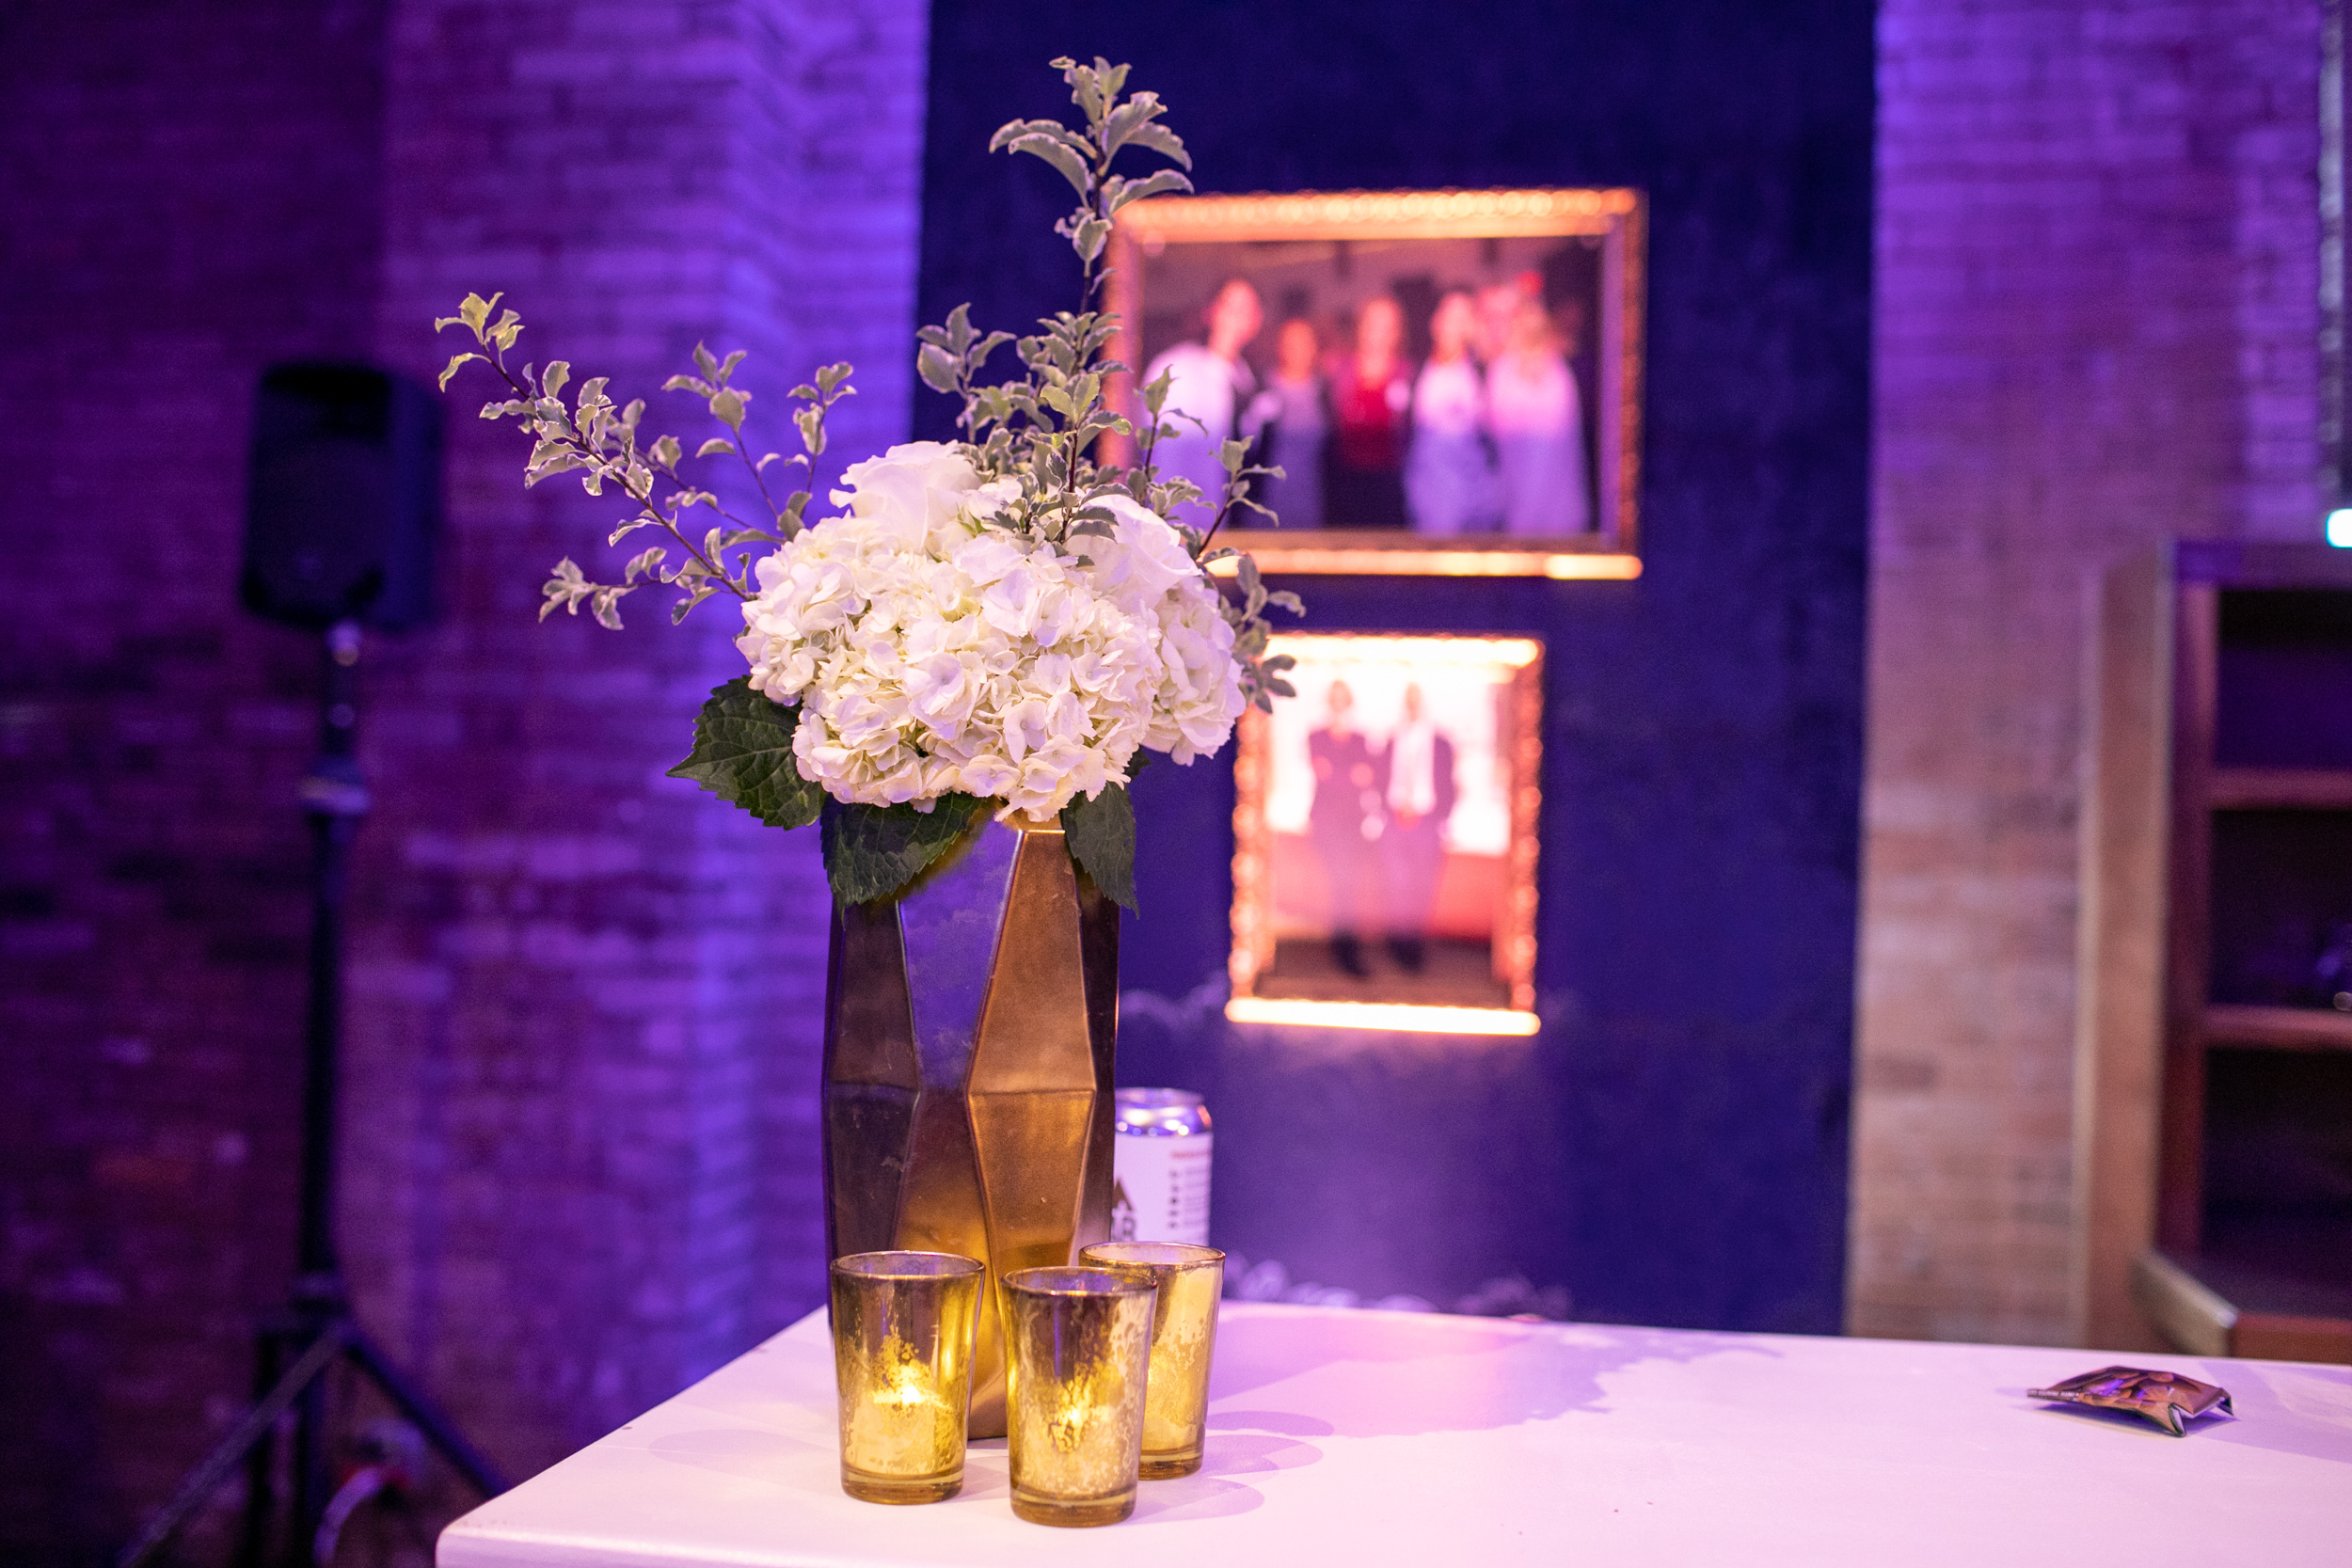 Malloy_Events_Pizzuti_McLane_Middleton_Centennial_Celebration_Manchester_NH_Corporate_Production_floral_center_piece